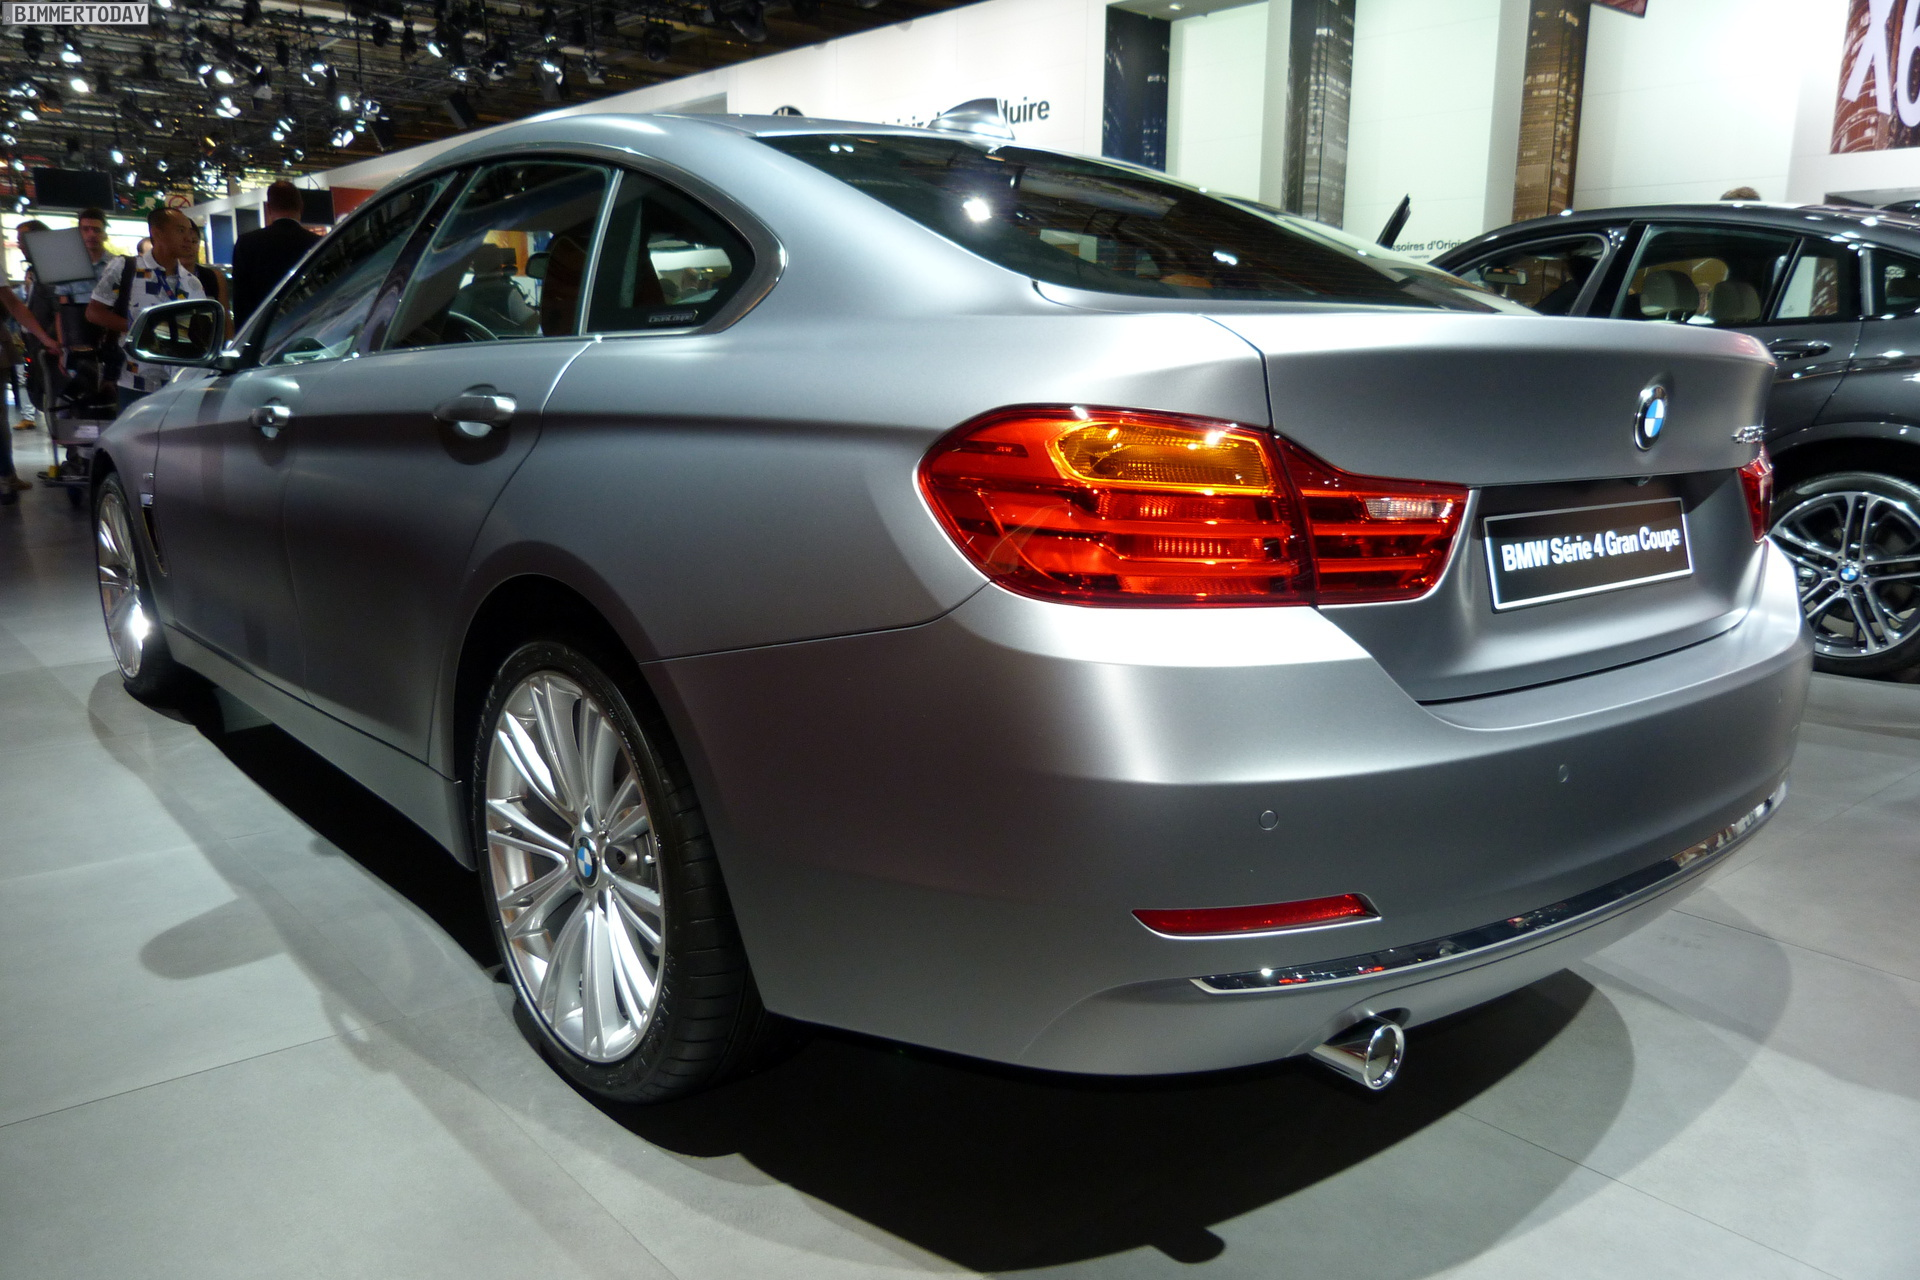 2014 Paris Motor Show Bmw 4 Series Gran Coupe In Frozen